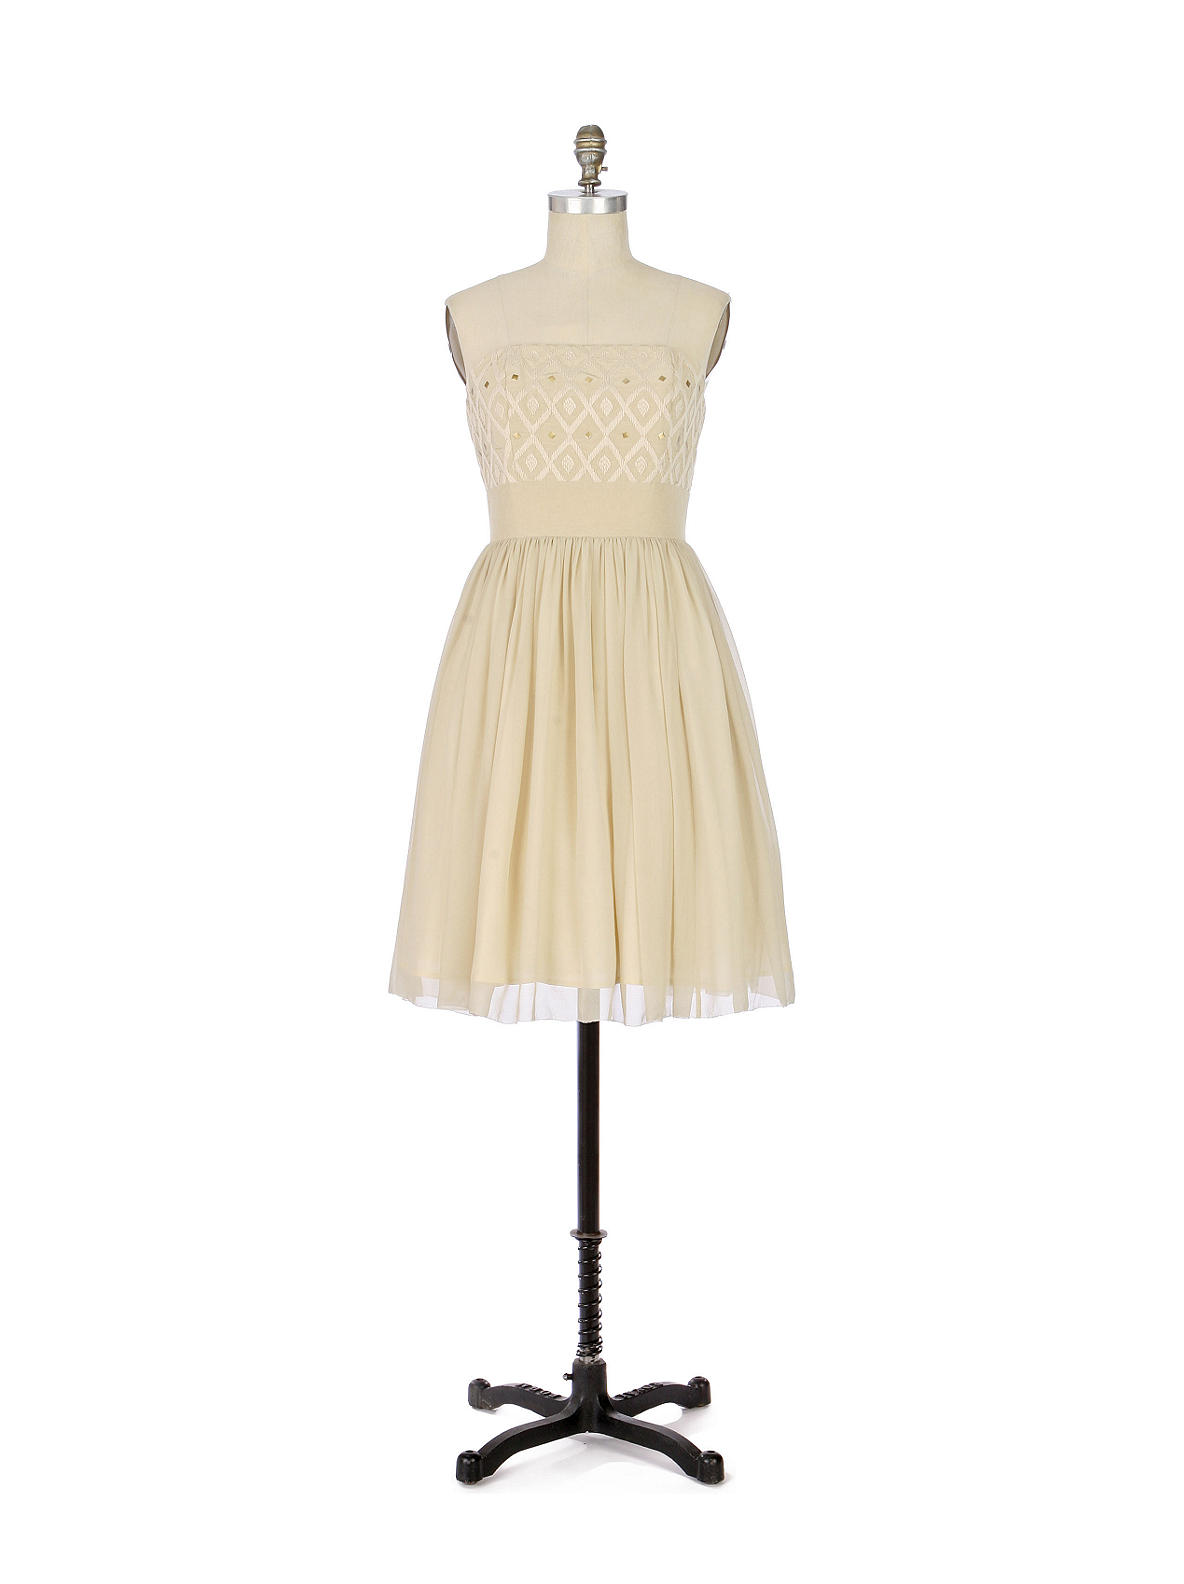 Plaster & Panes Dress - Anthropologie.com :  anthropologie